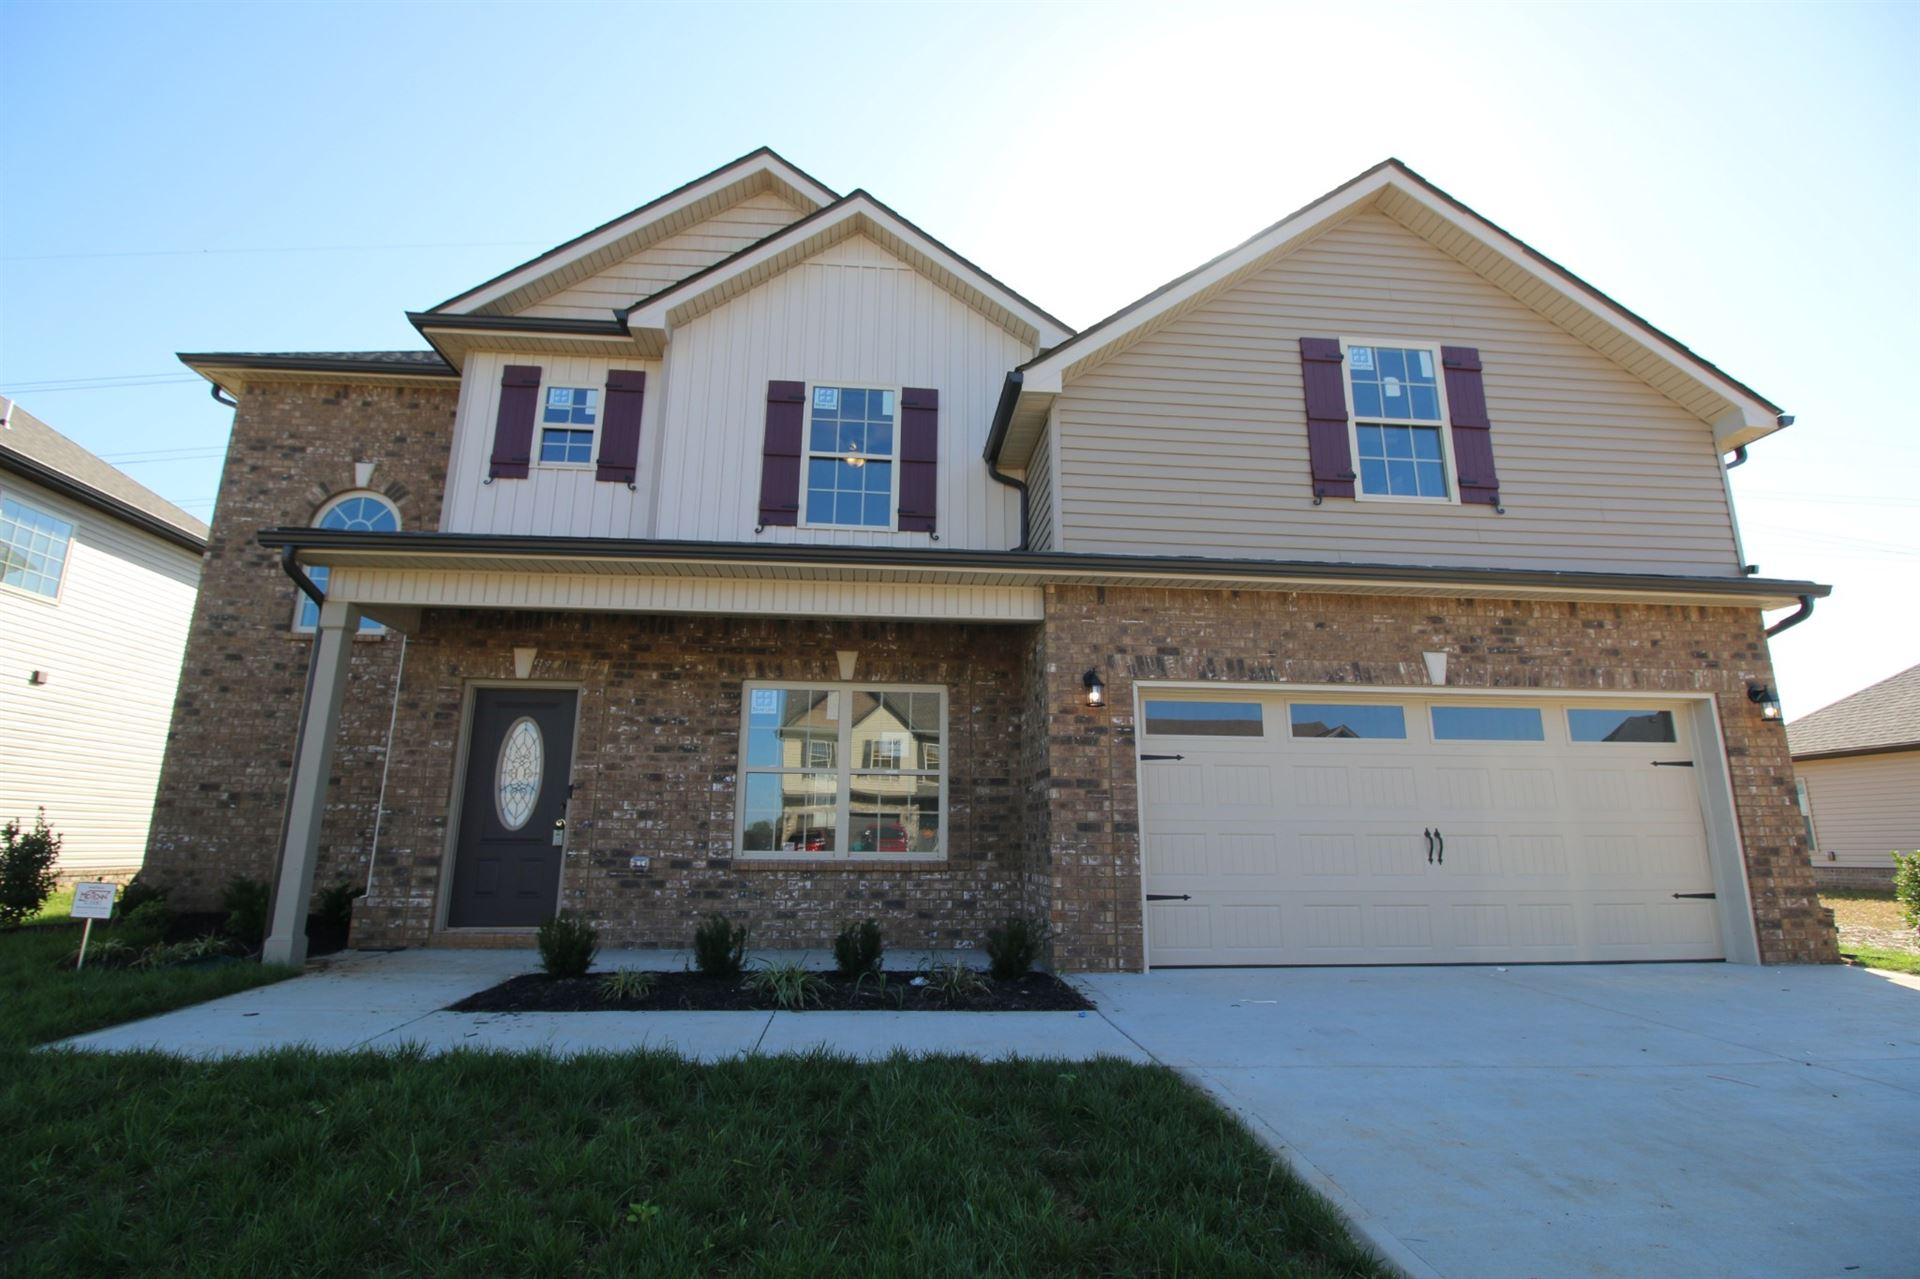 309 Summerfield, Clarksville, TN 37040 - MLS#: 2161510